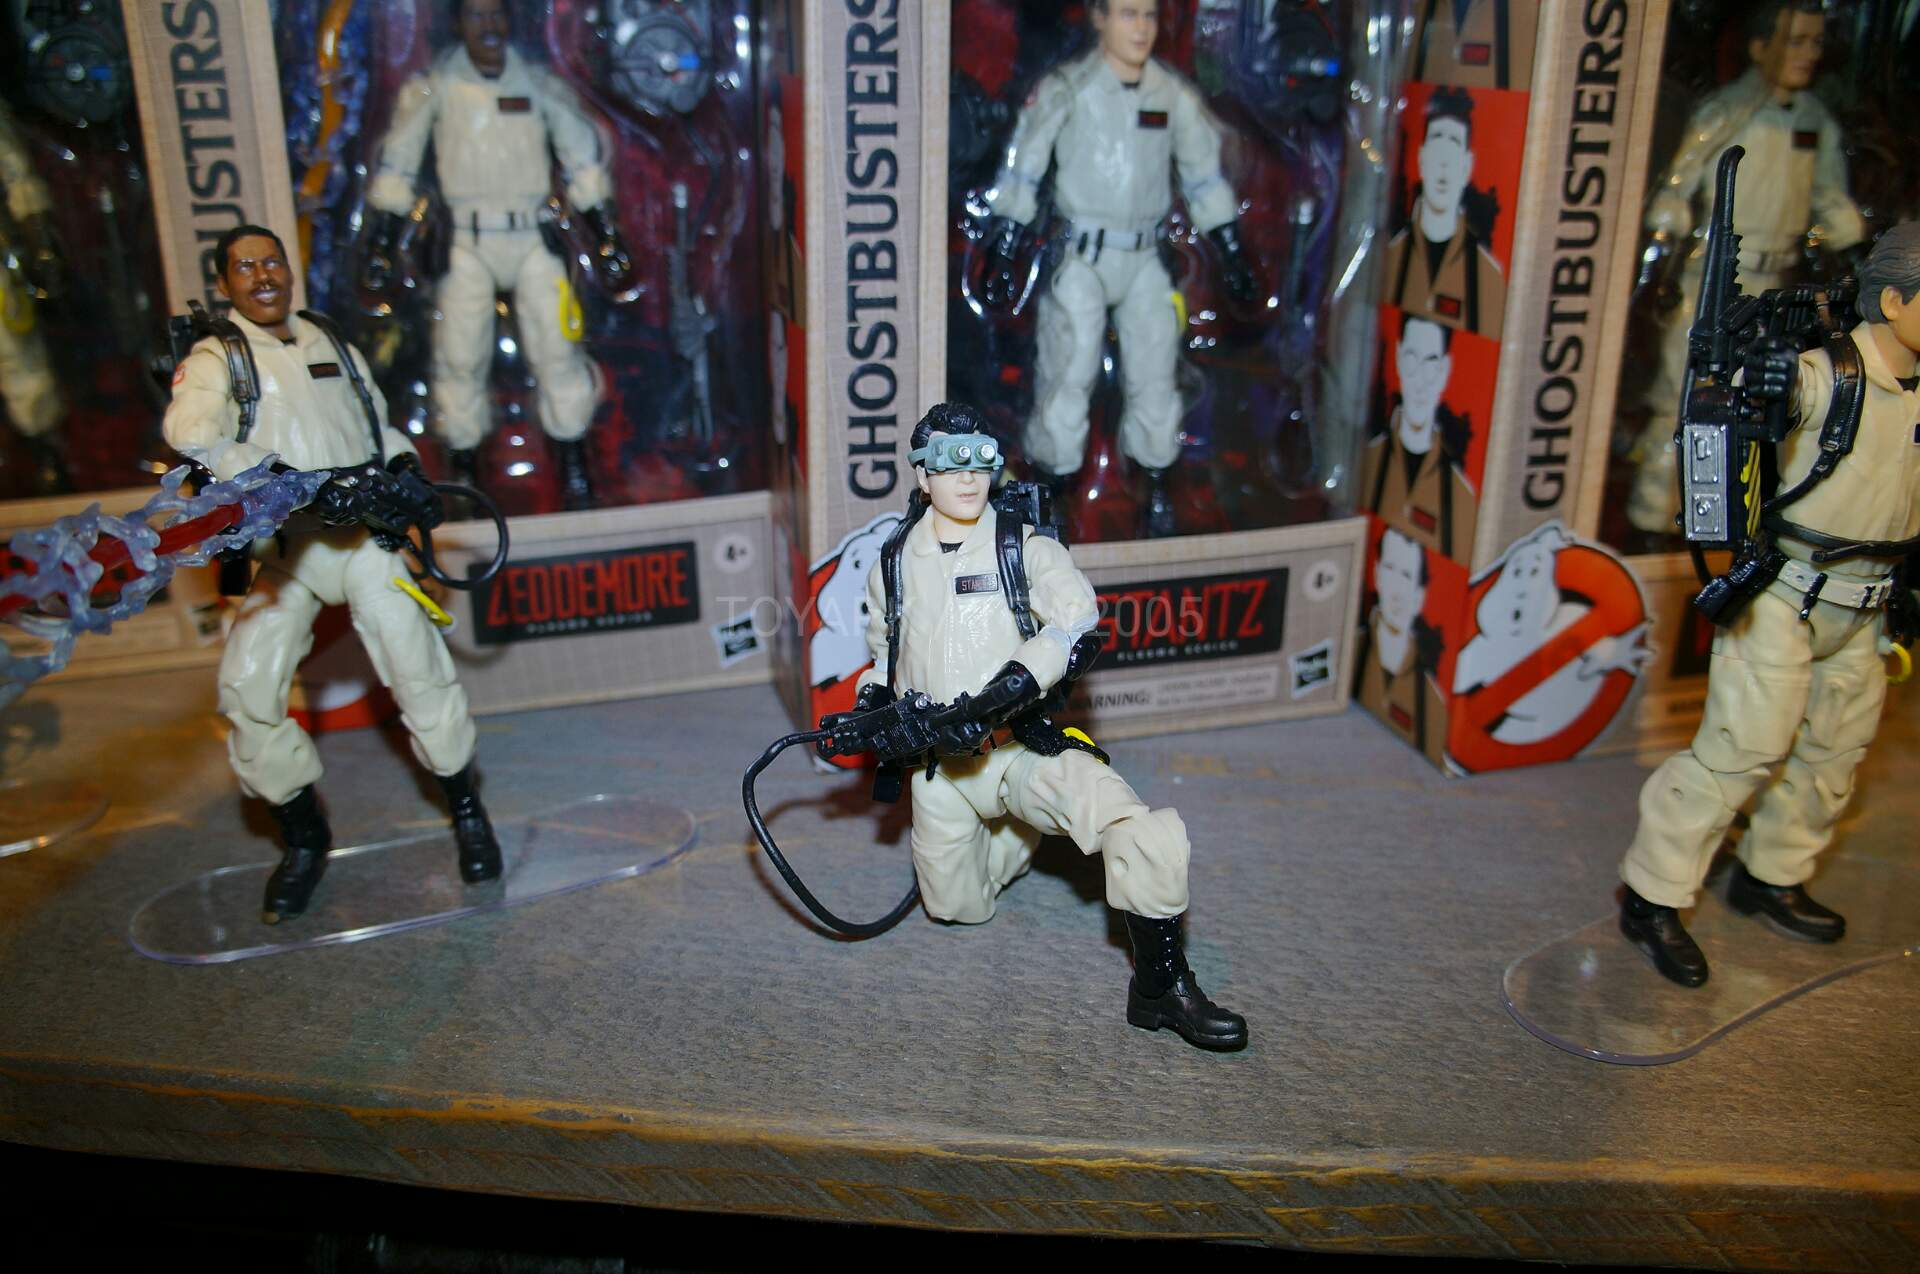 Toy-Fair-2020-Hasbro-Ghostbusters-022.jpg